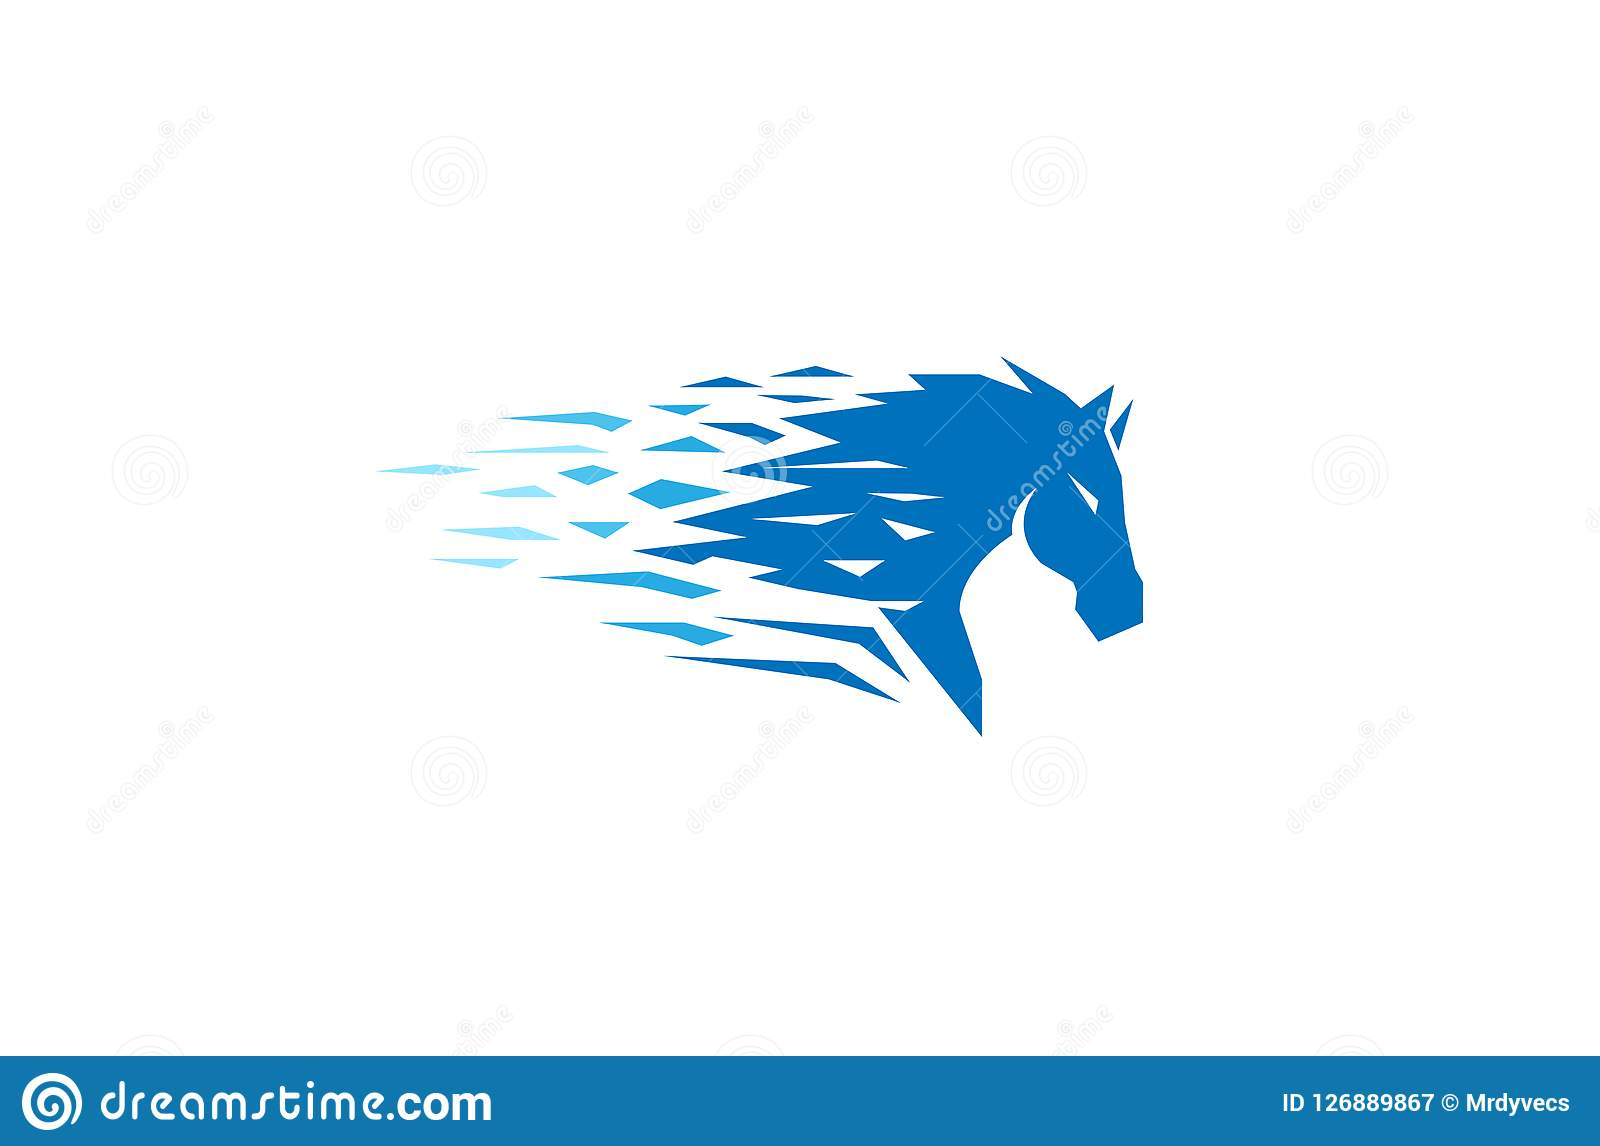 Abstract Horse Logo Stock Illustrations 7 246 Abstract Horse Logo Stock Illustrations Vectors Clipart Dreamstime